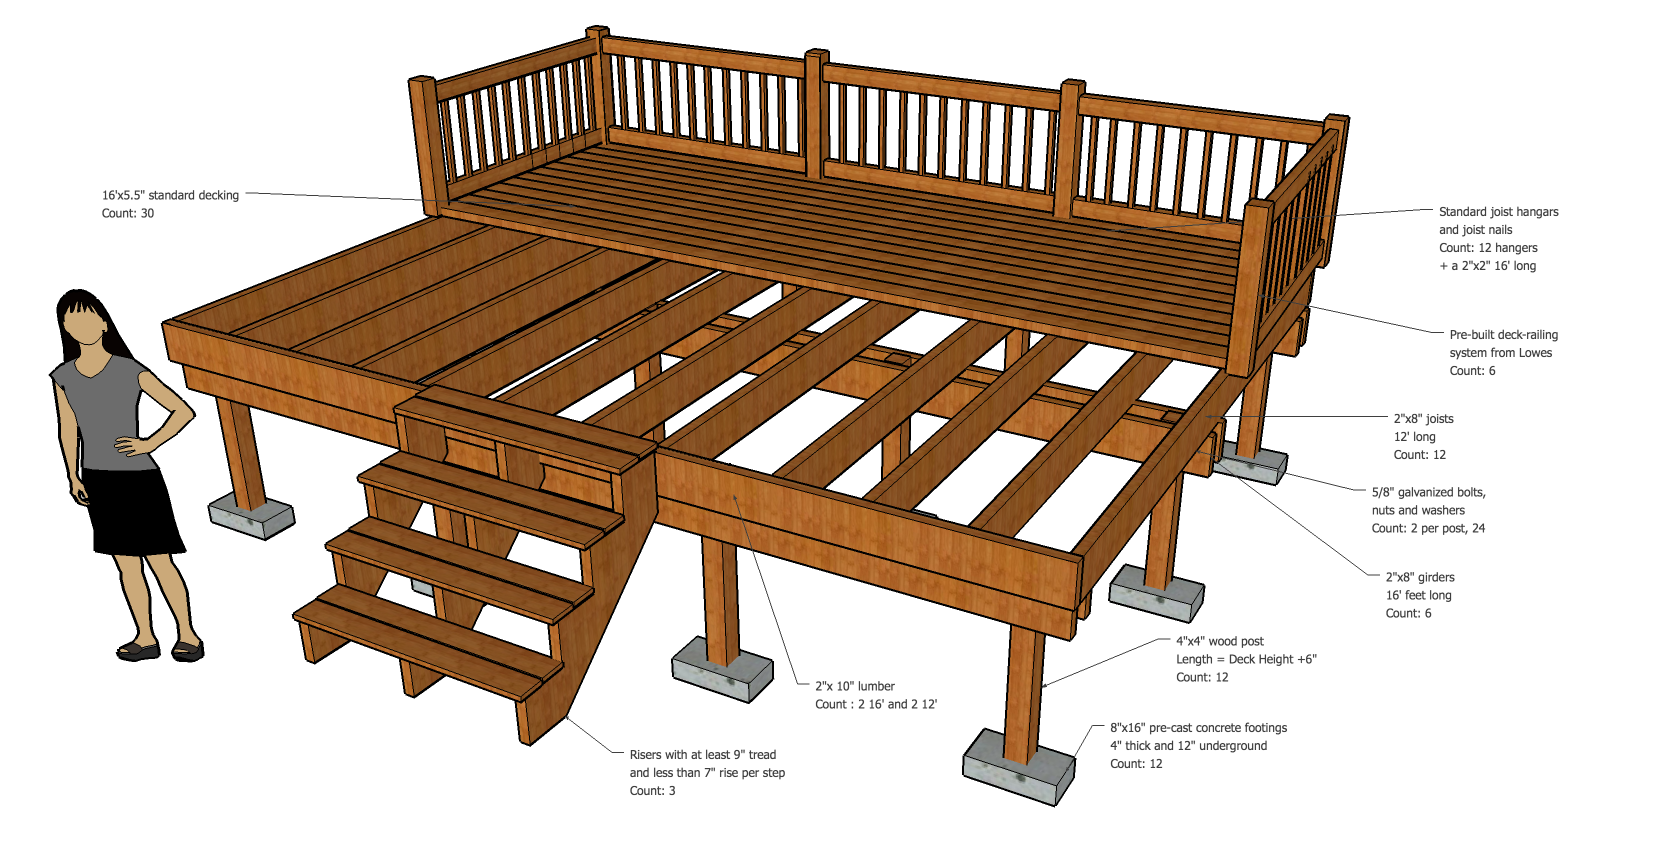 How to Build a Deck Step-by-Step - Thrifty Outdoors ManThrifty ...